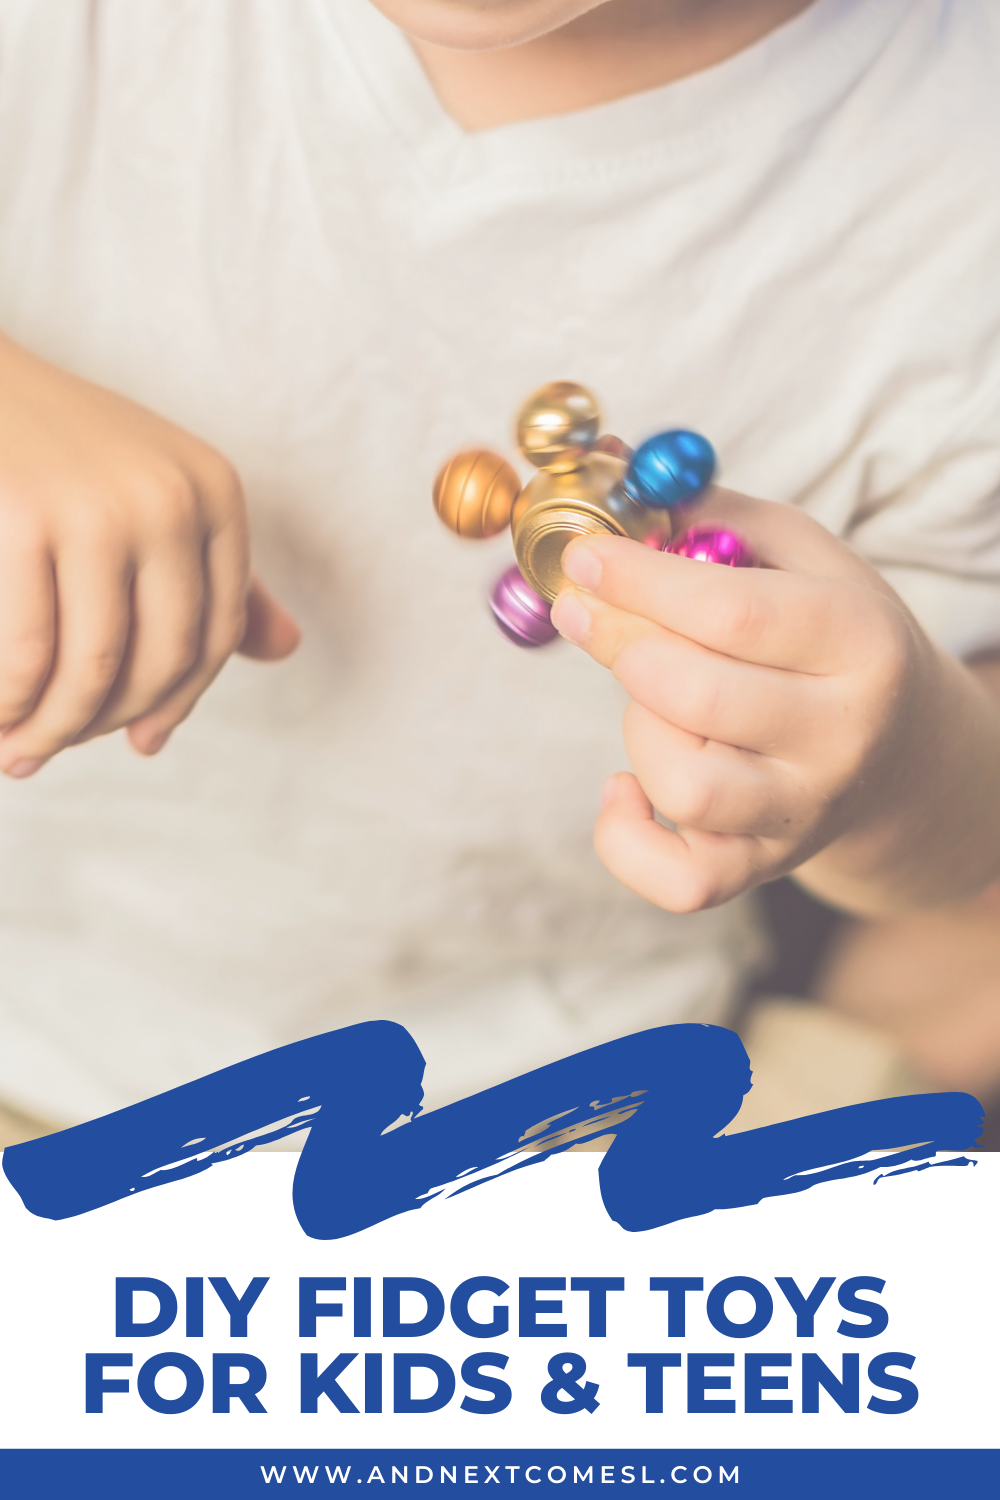 How to make easy DIY fidget toys for kids and teens